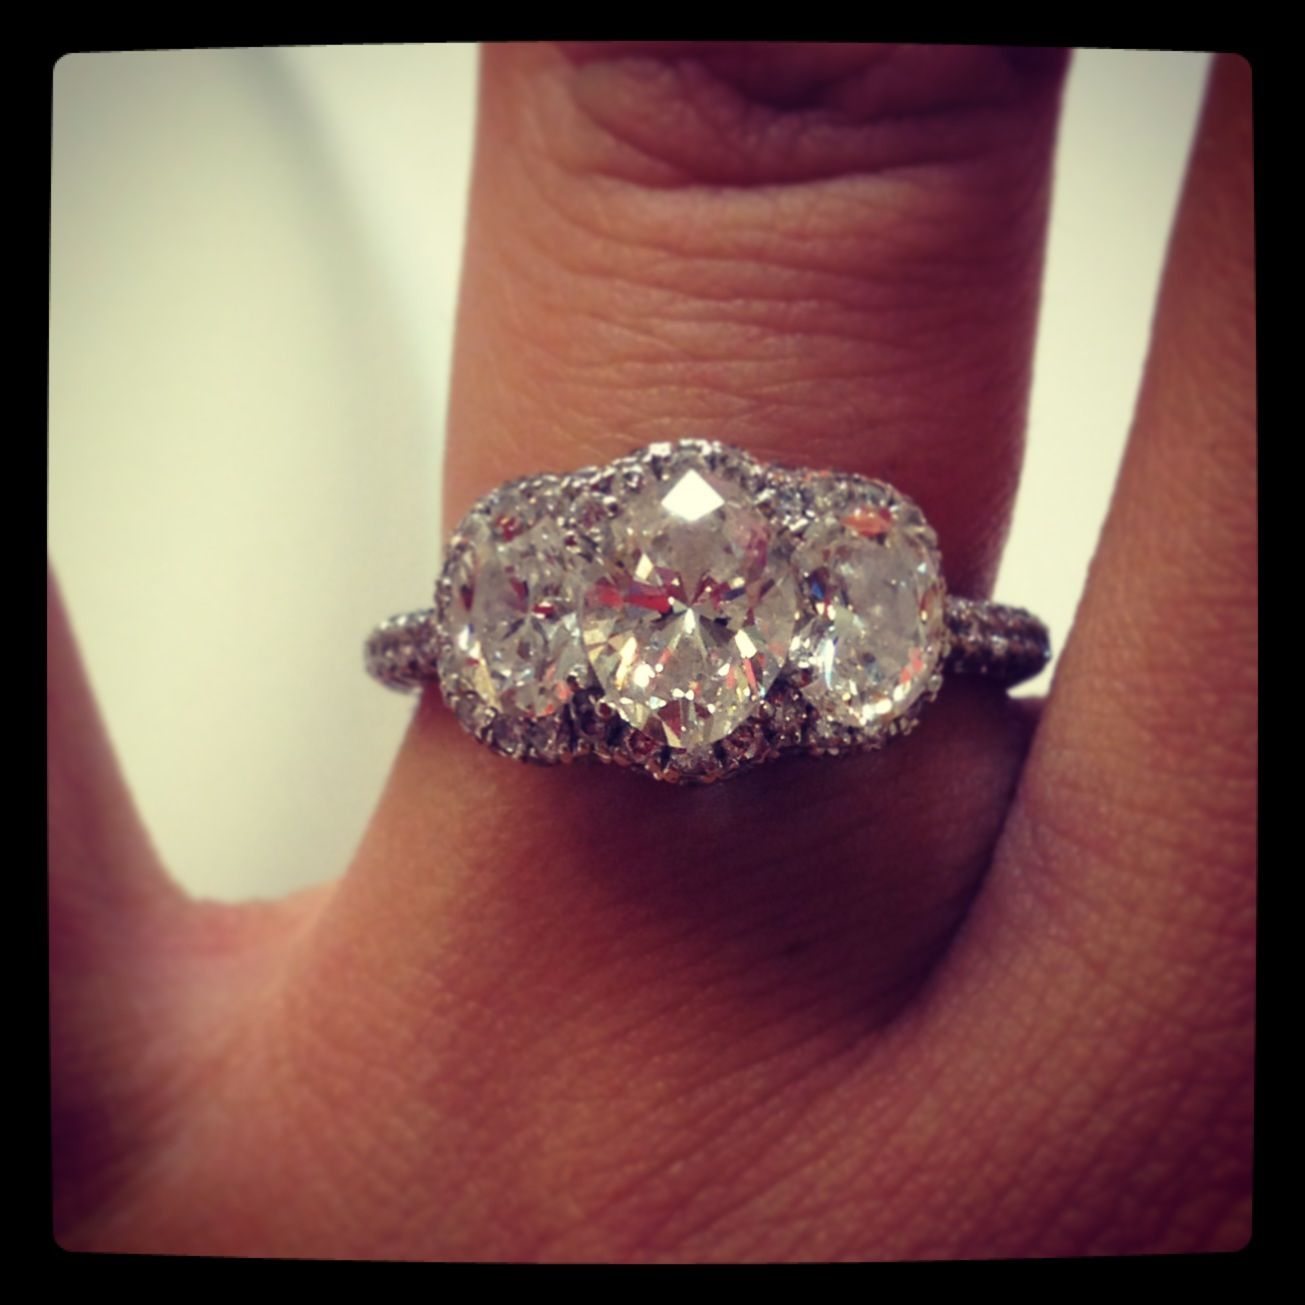 Love my engagement ring  2 3 carat Neil lane 3 stone engagement ring